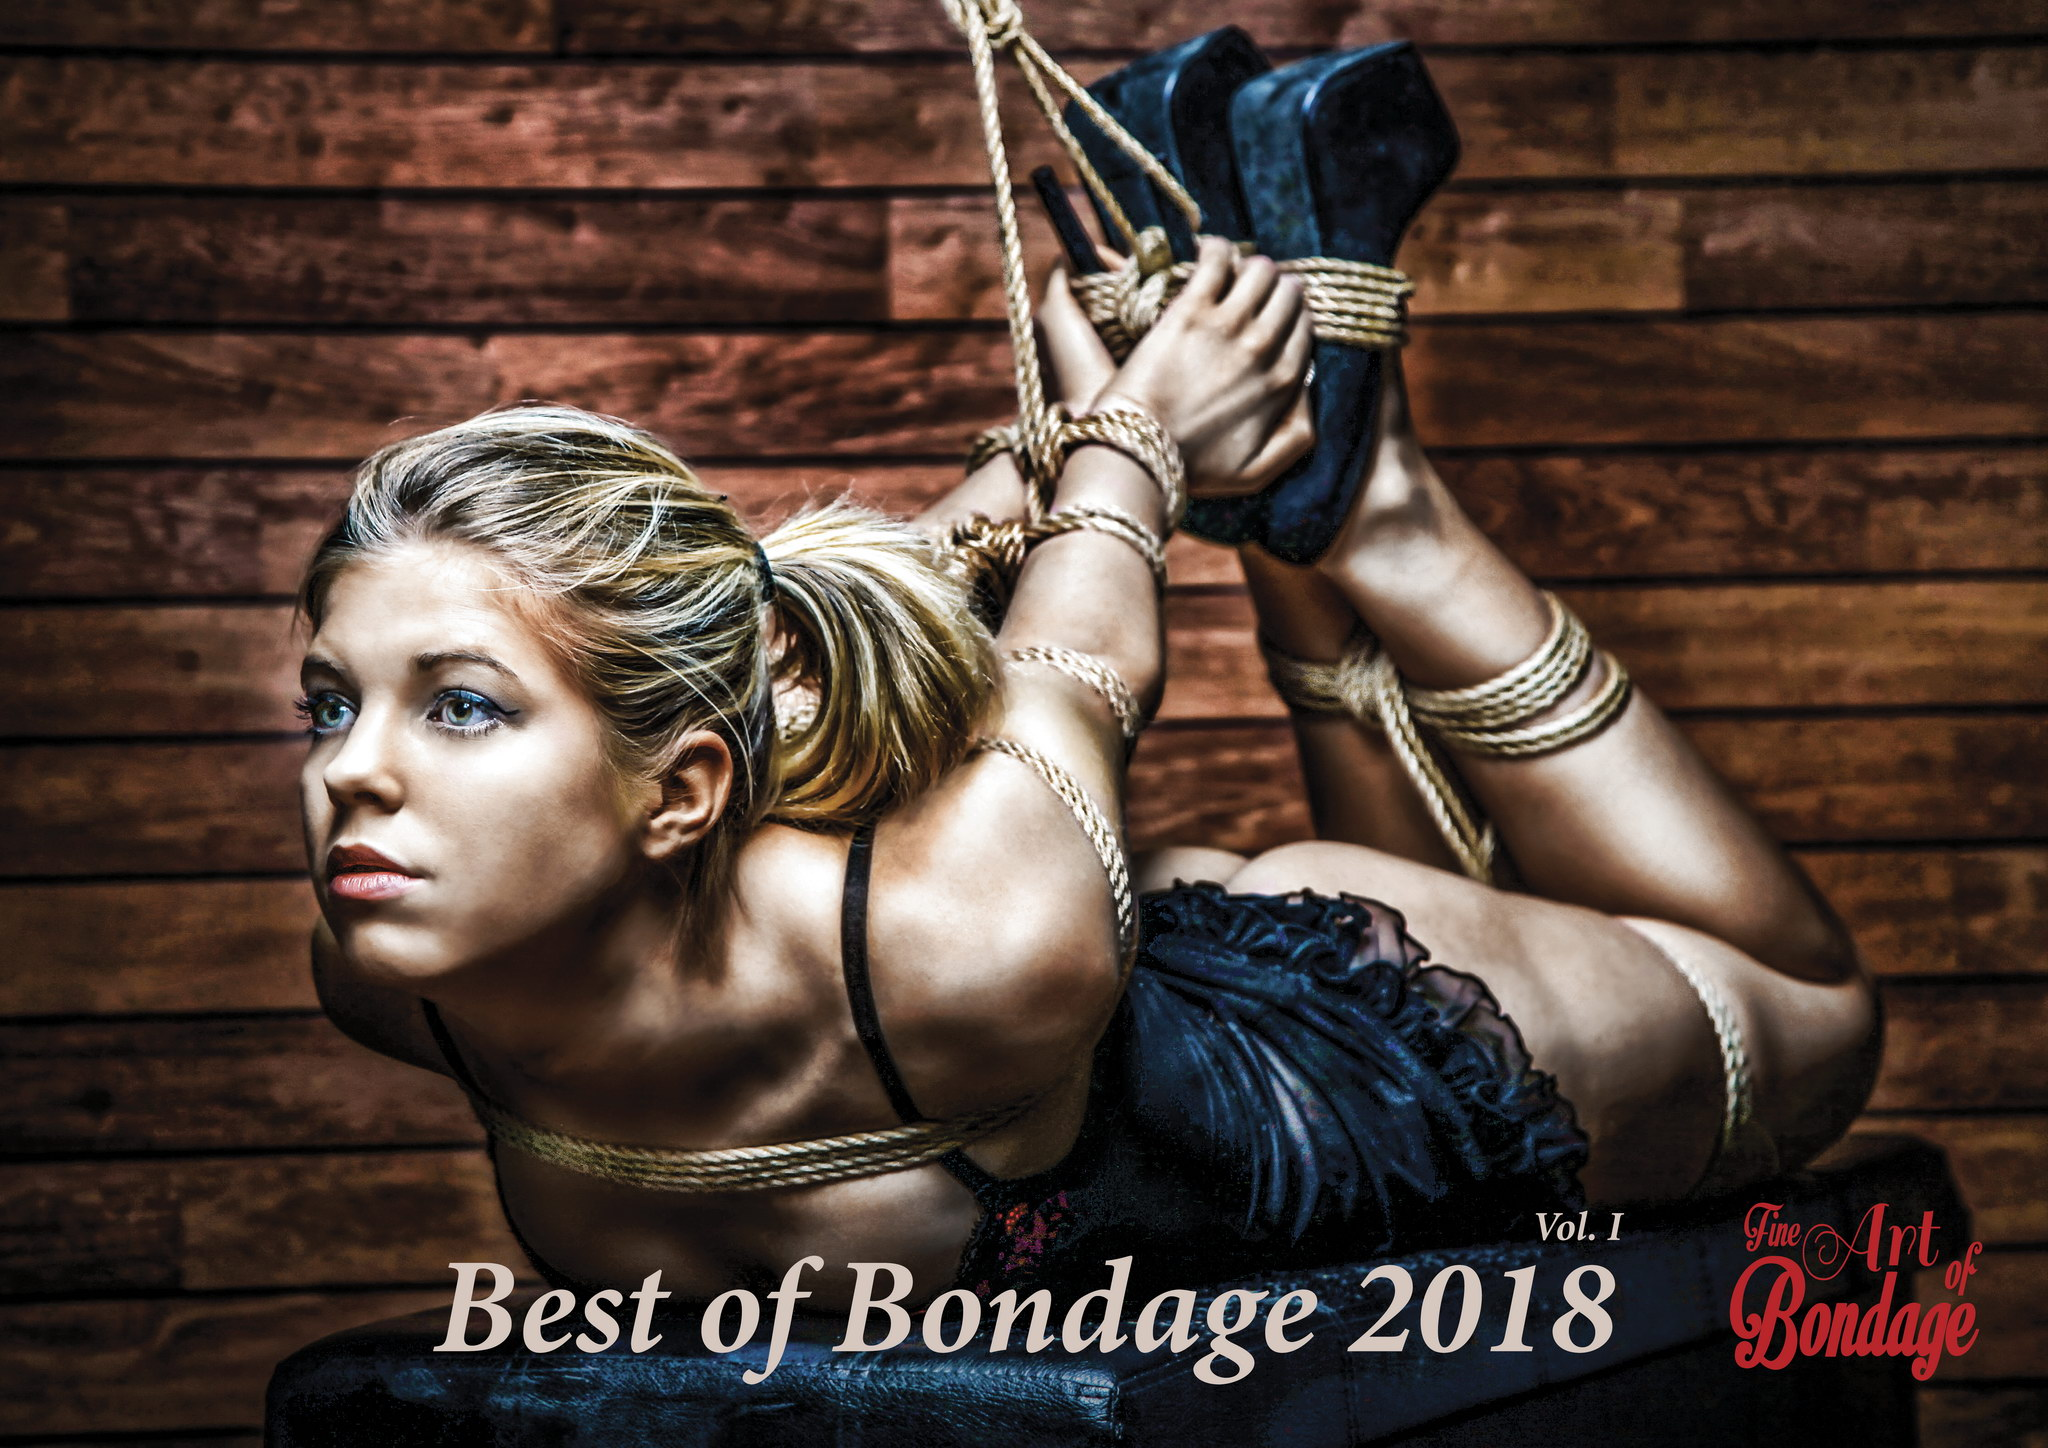 Calendar 2018 - Best of Bondage I - Fine Art of Bondage